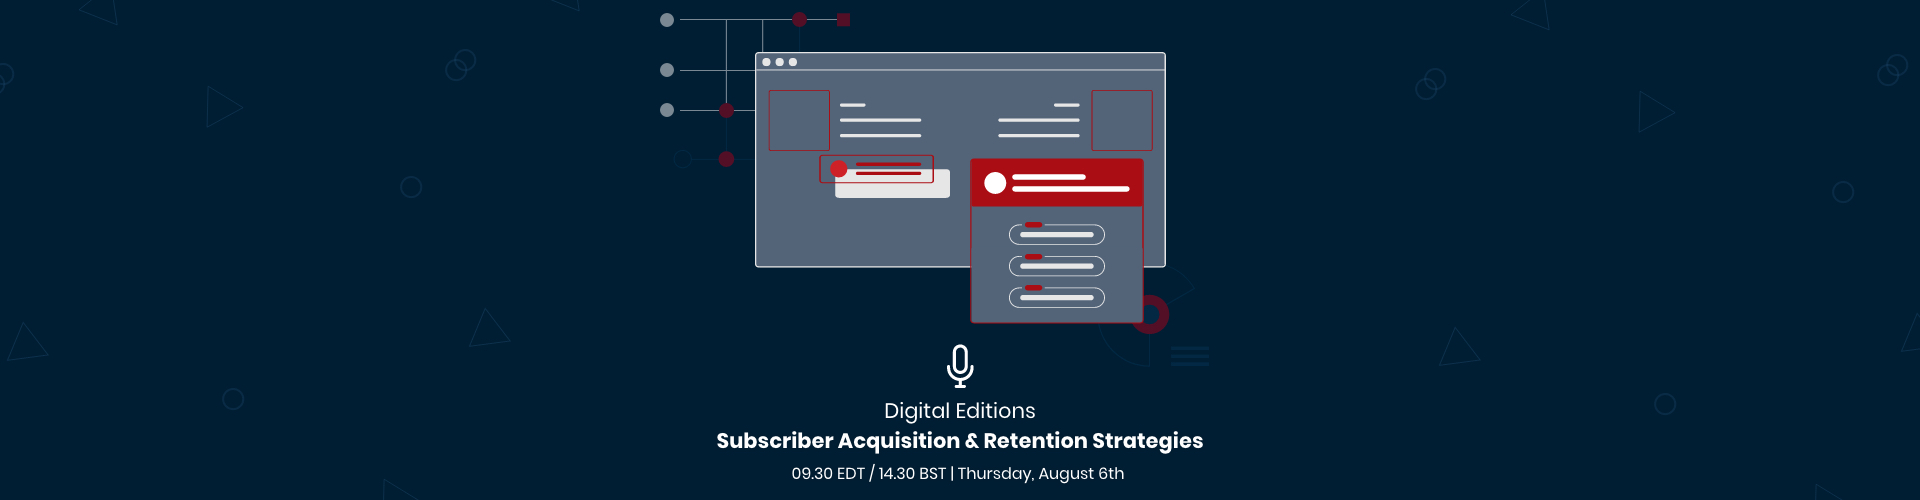 Webinar: Digital Editions: Subscriber Acquisition & Retention Strategies